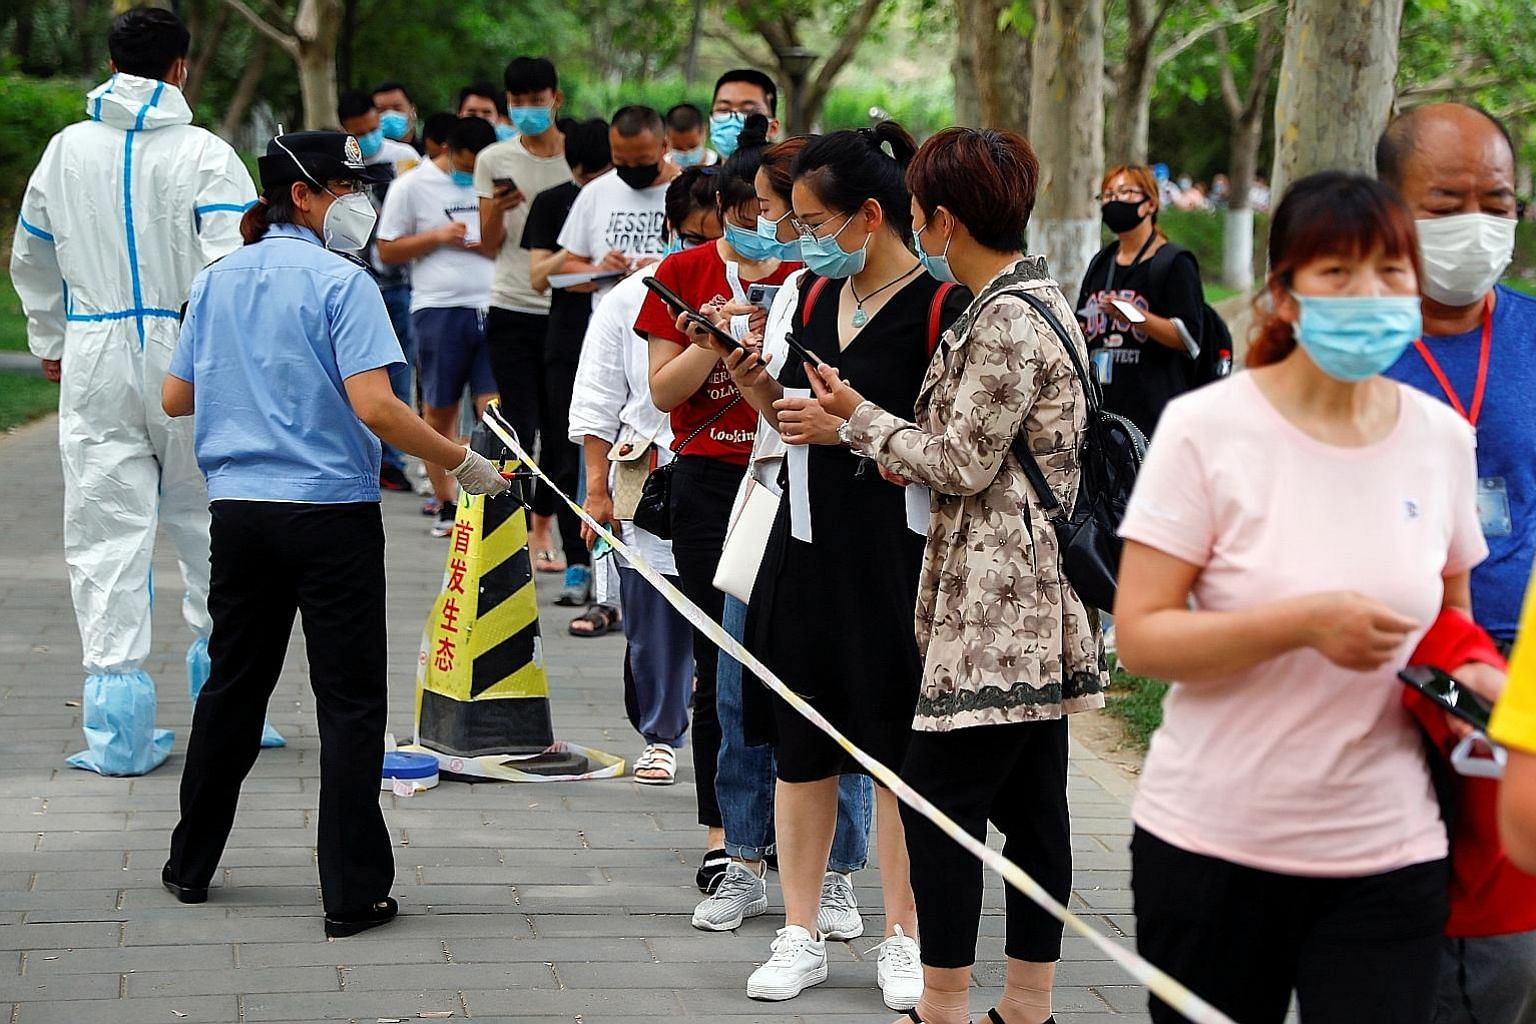 People lining up for a nucleic acid test in Fengtai district yesterday, after the outbreak in Beijing. The city has classified at least one community as high risk and subjected its residents to quarantine, and 32 others as medium risk. PHOTO: REUTERS